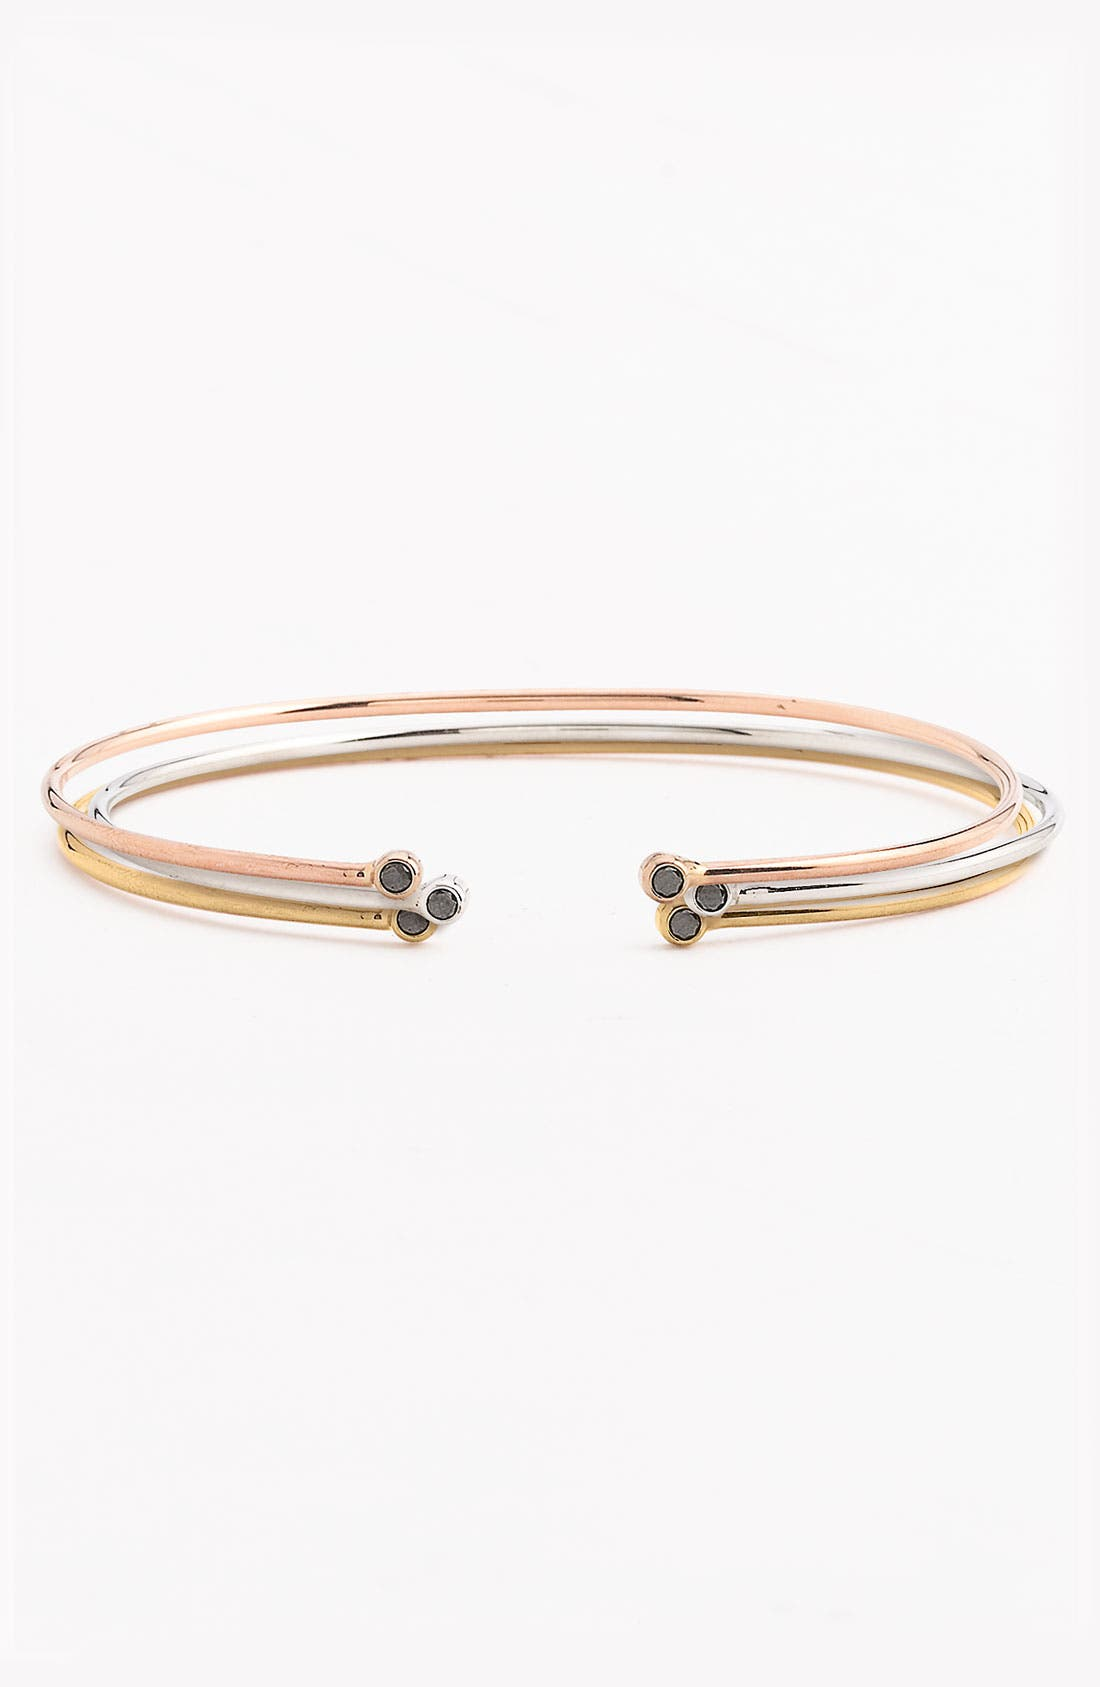 Main Image - Lana Jewelry 'Echo' Black Diamond Bracelet (Nordstrom Exclusive)